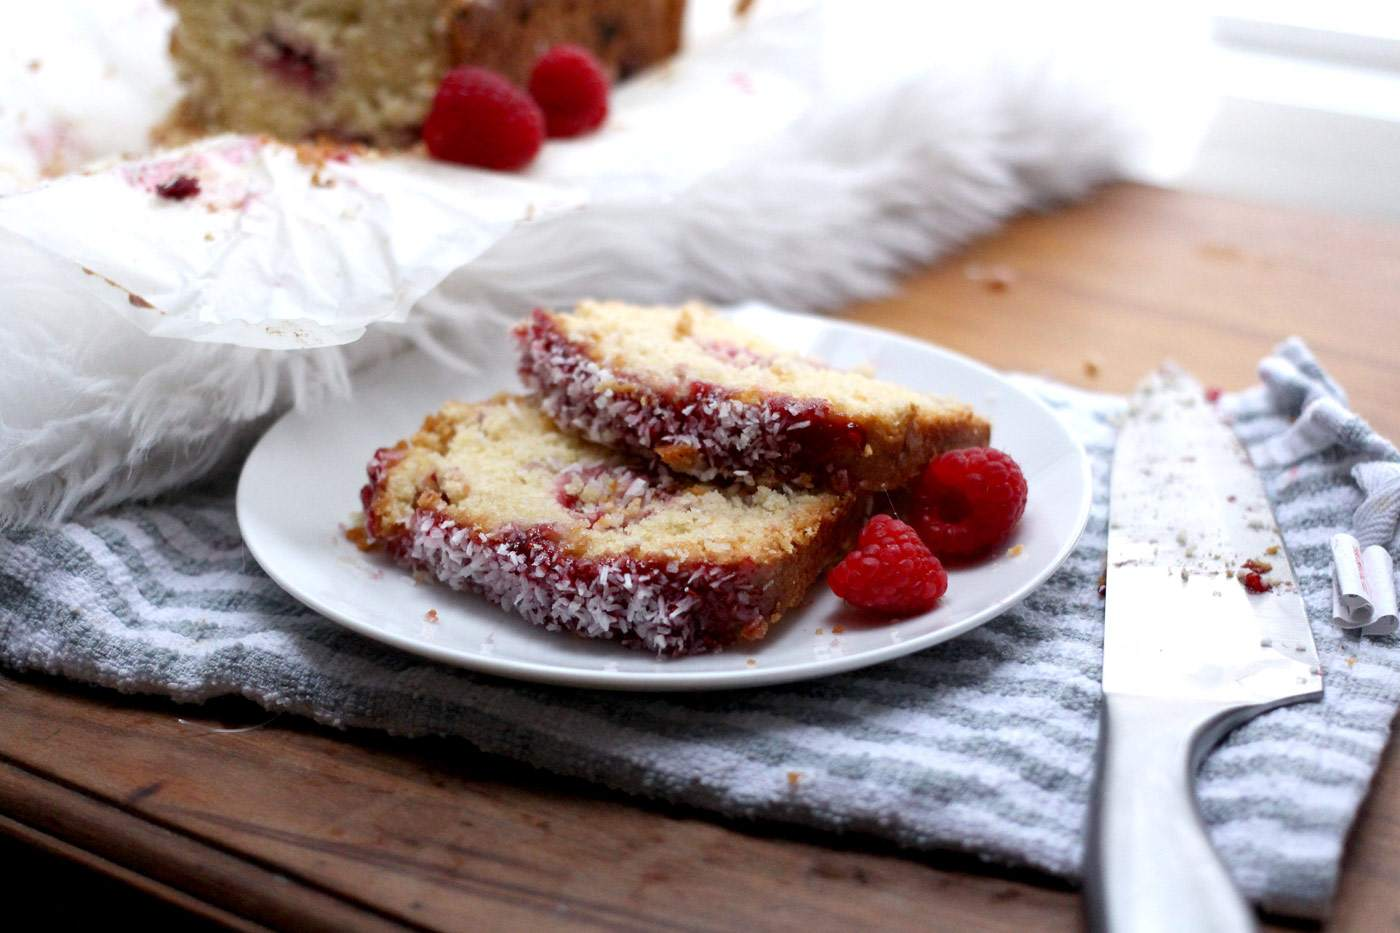 raspberry-coconut-loaf-cake-recipe-jam-british-bake-off-8